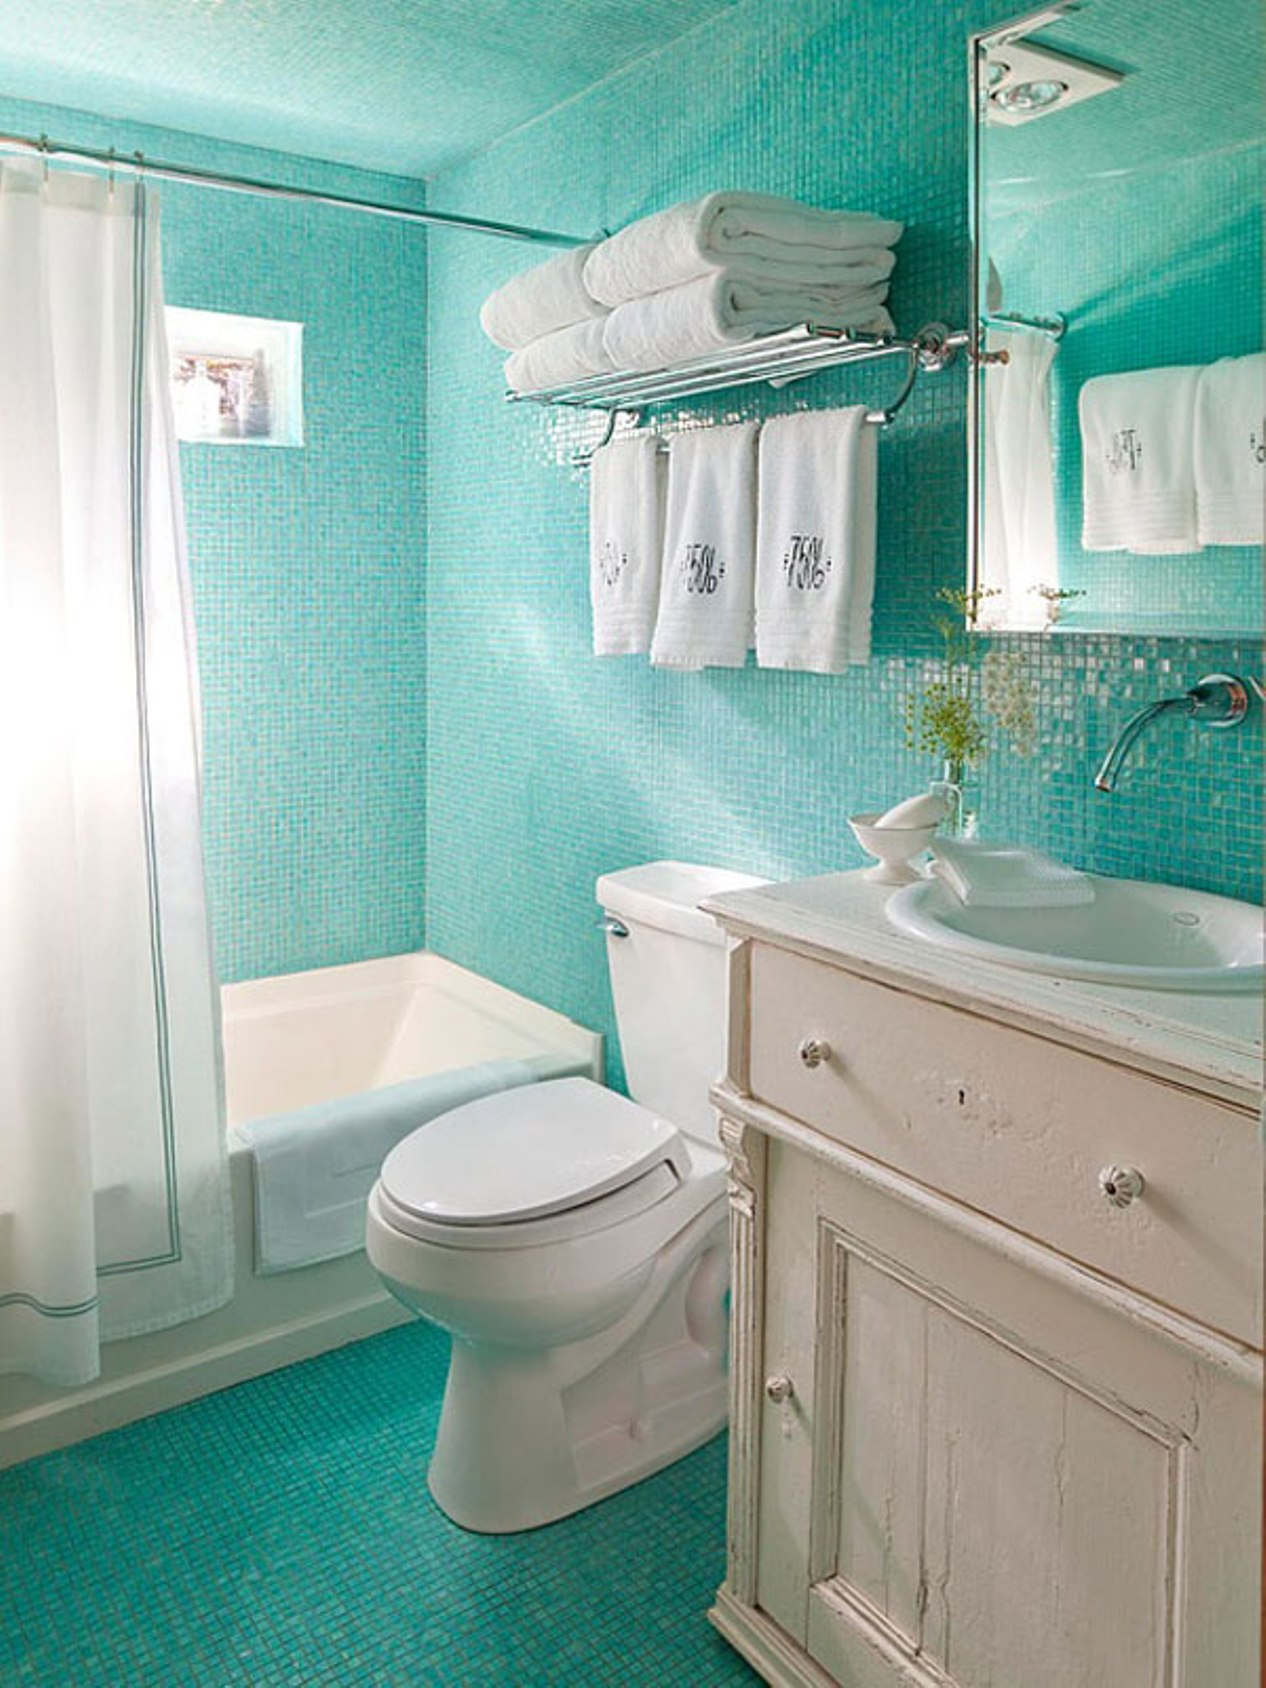 ocean-blue-glass-tile-with-wall-mounted-faucet-and-white-bath-tub-in-small-bathroom-design